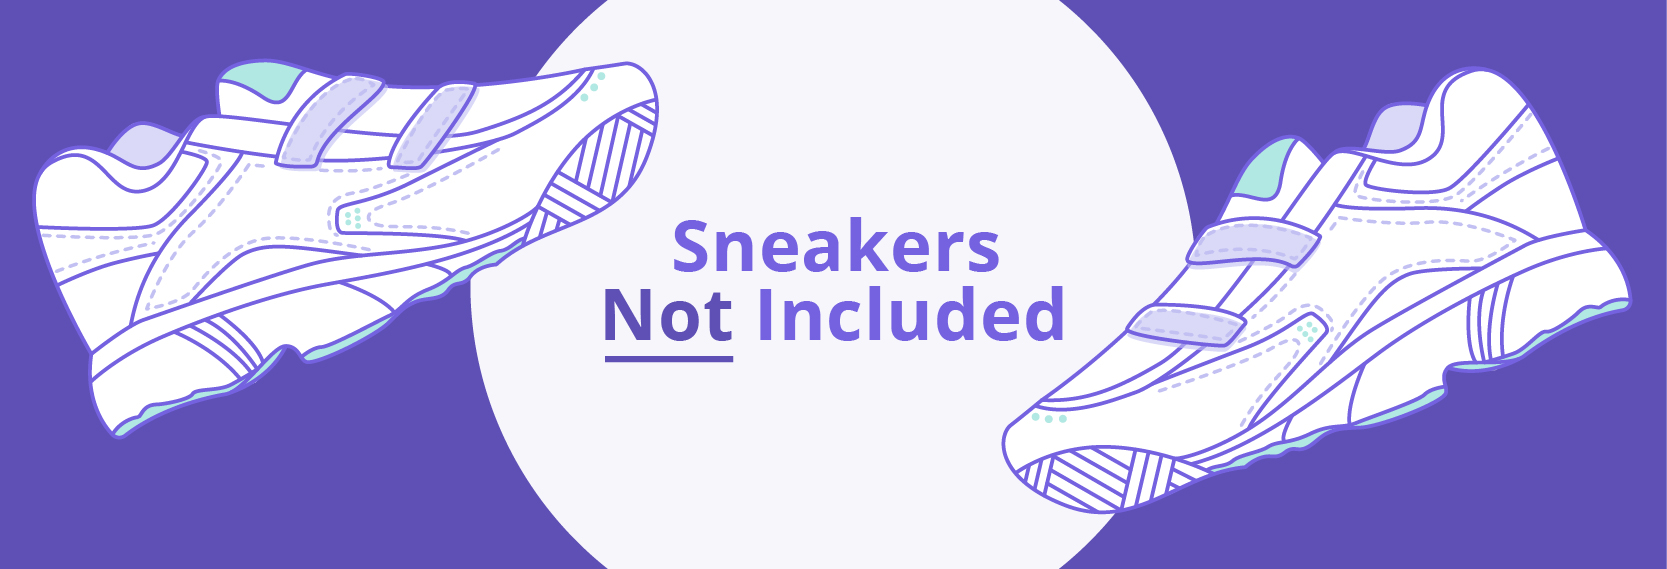 Silver Sneakers Eligibility Requirements for Medicare & More